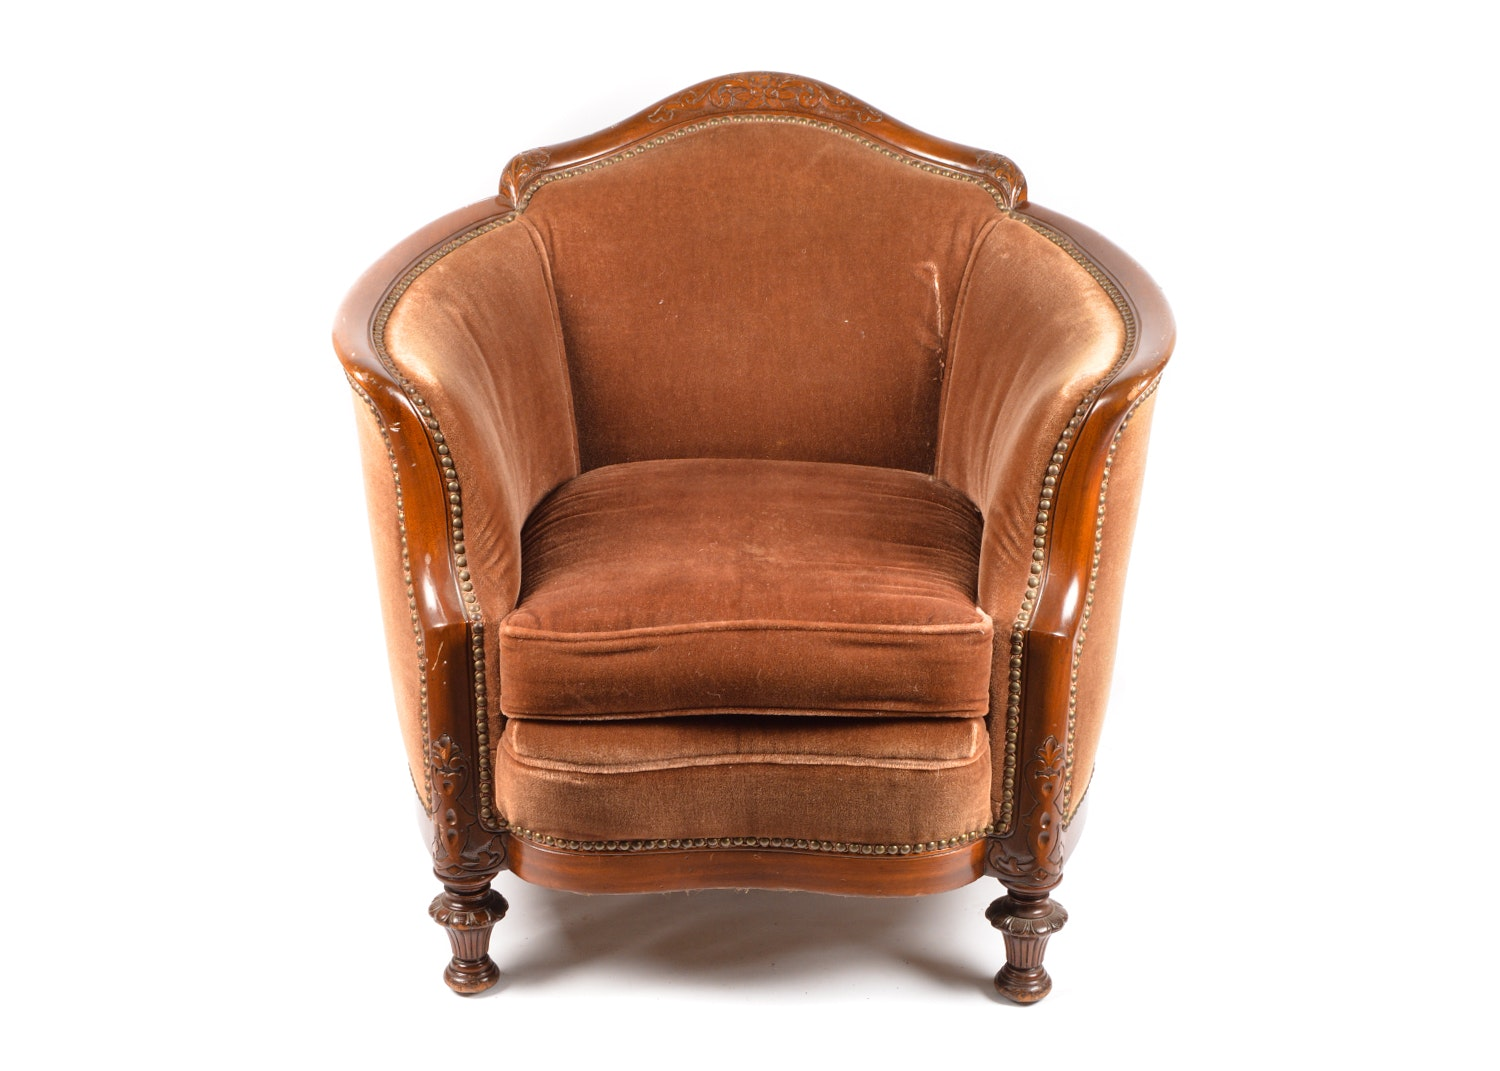 Victorian Style Mohair Upholstered Cabriole Armchair, 20th Century